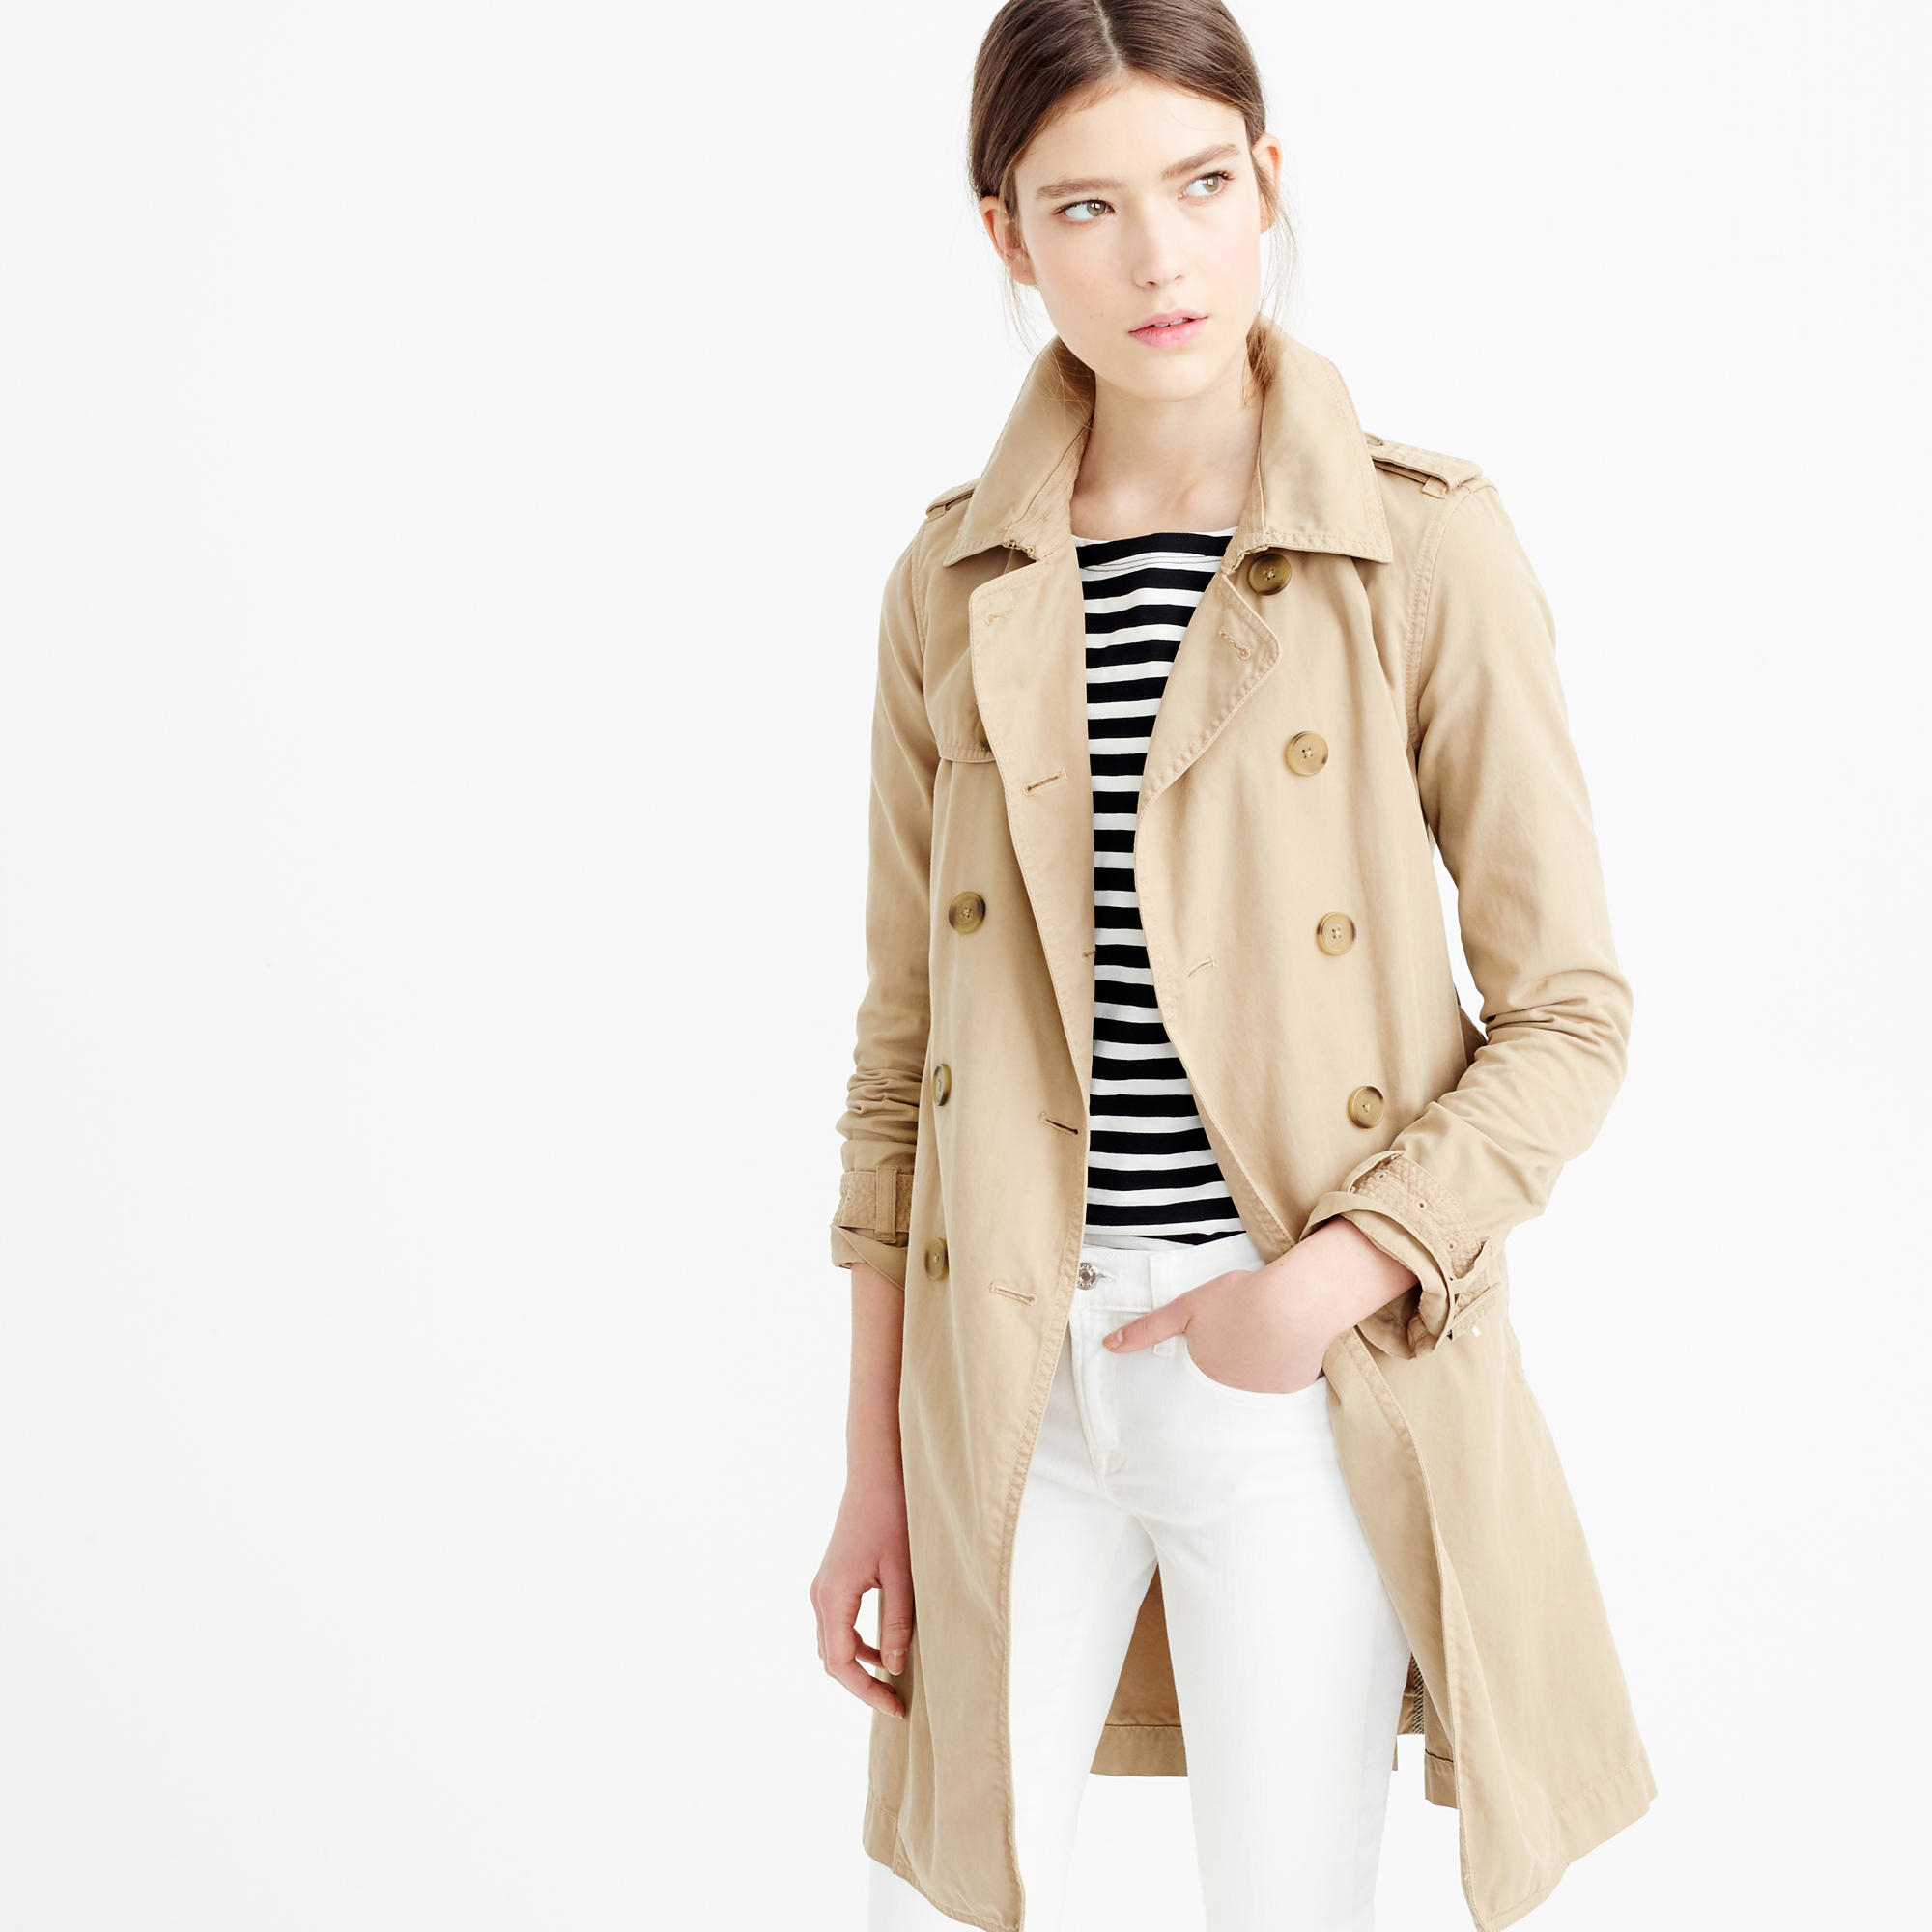 J.crew Petite Washed Cotton Trench Coat in Brown | Lyst